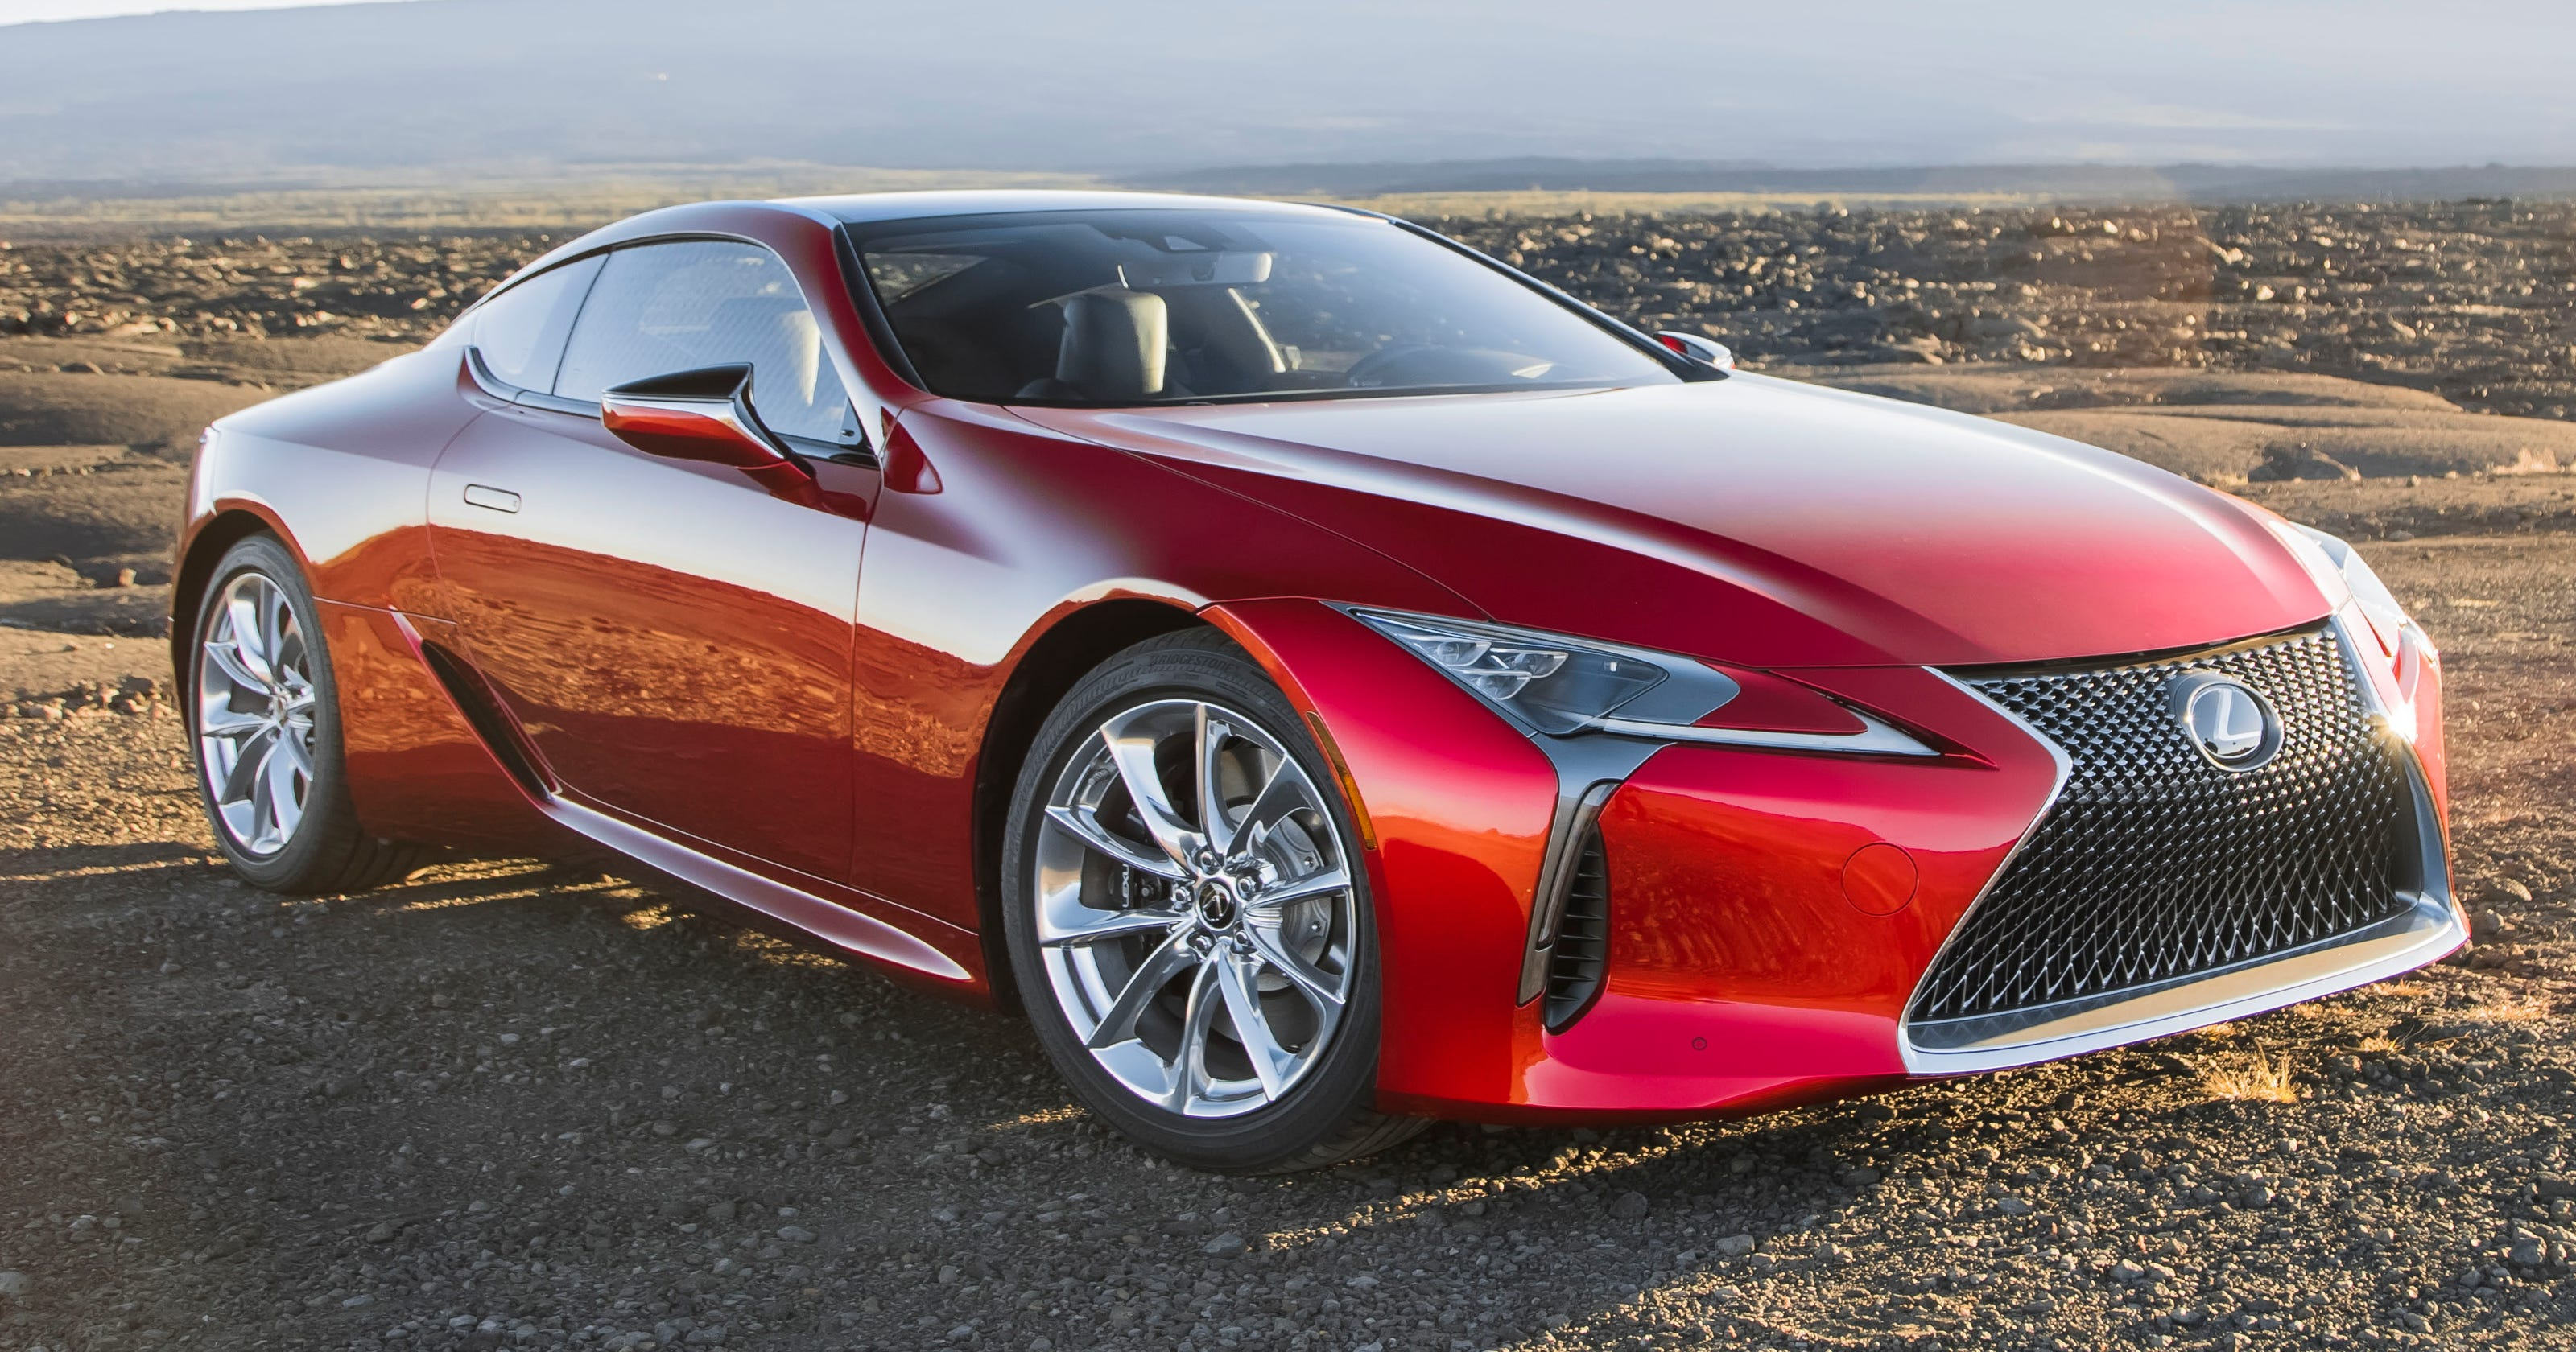 review: lexus lc 500 offers stunning looks and more